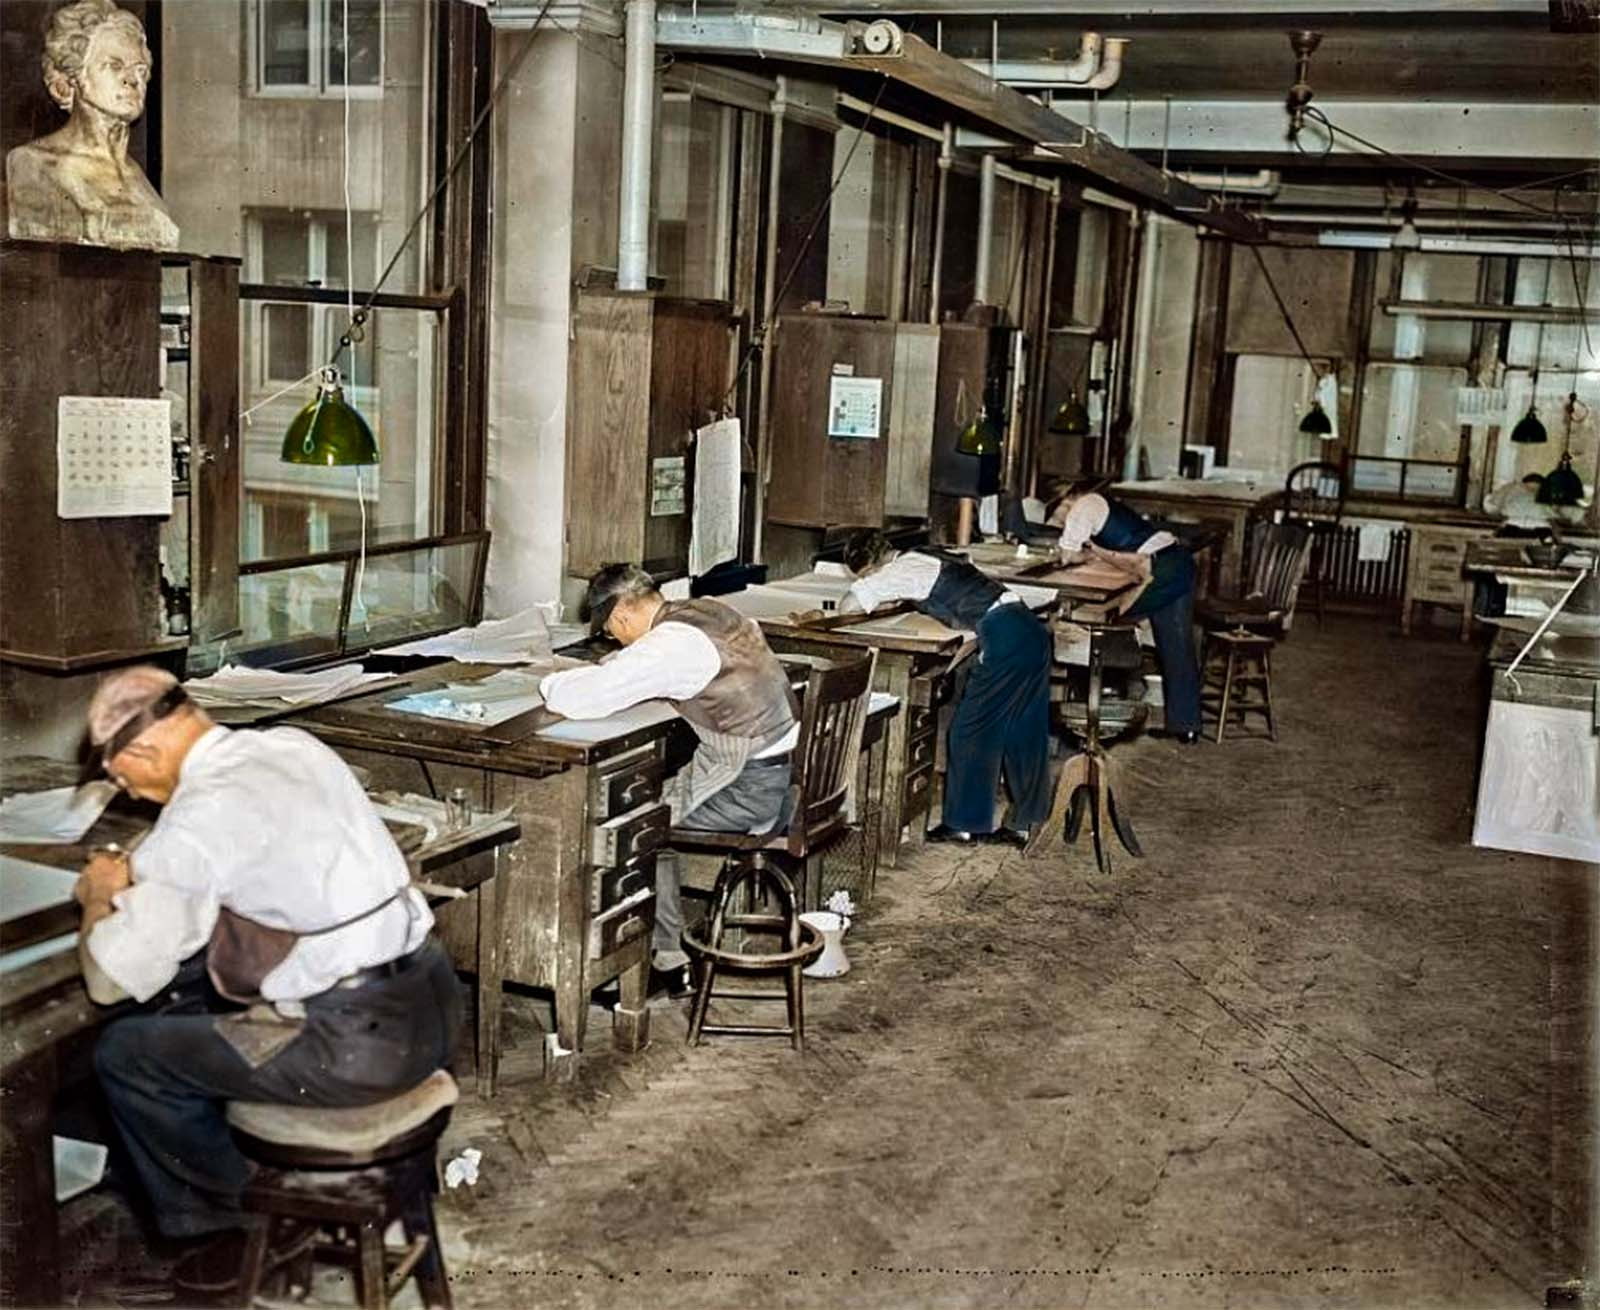 Here draftsmen are correcting geological survey printing plates, at The Department of Interior Geological Survey Section, Washington DC. 1939.